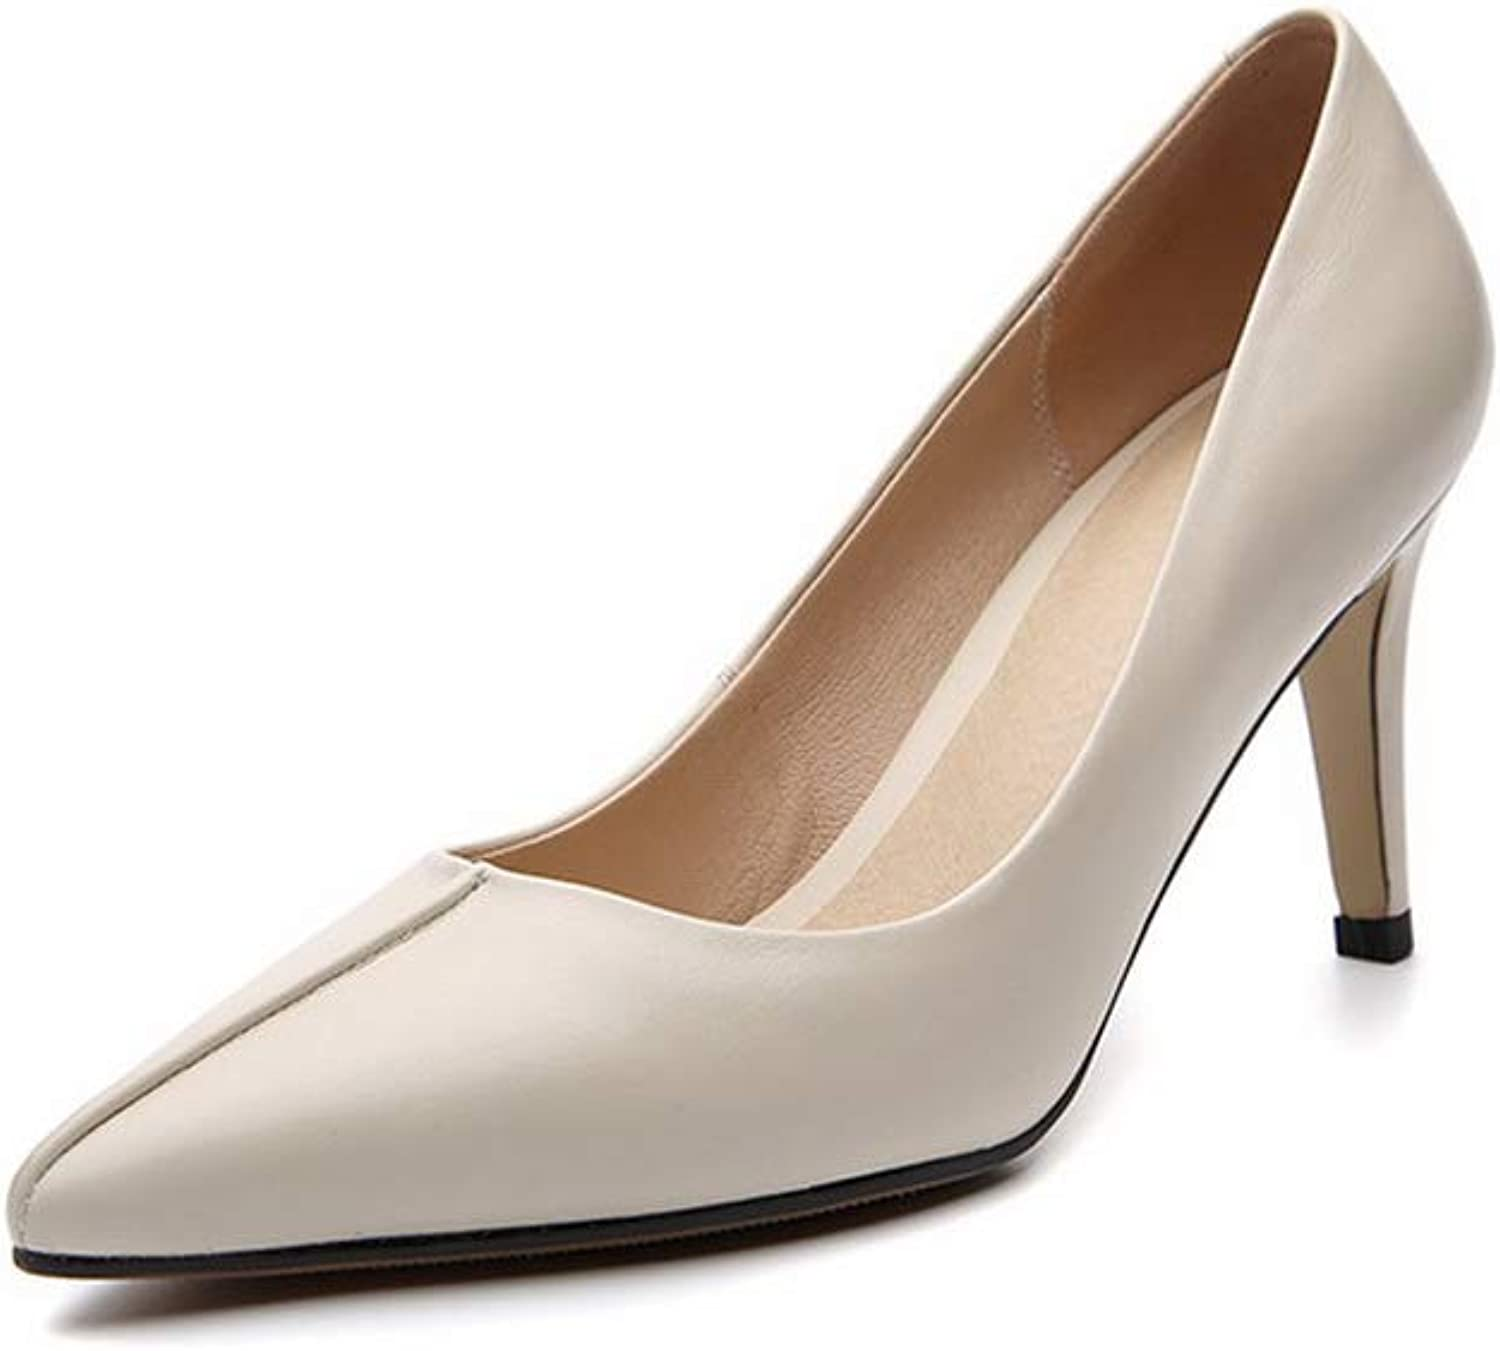 AdeeSu Womens Solid Smooth Leather Pleated Urethane Pumps shoes SDC06059